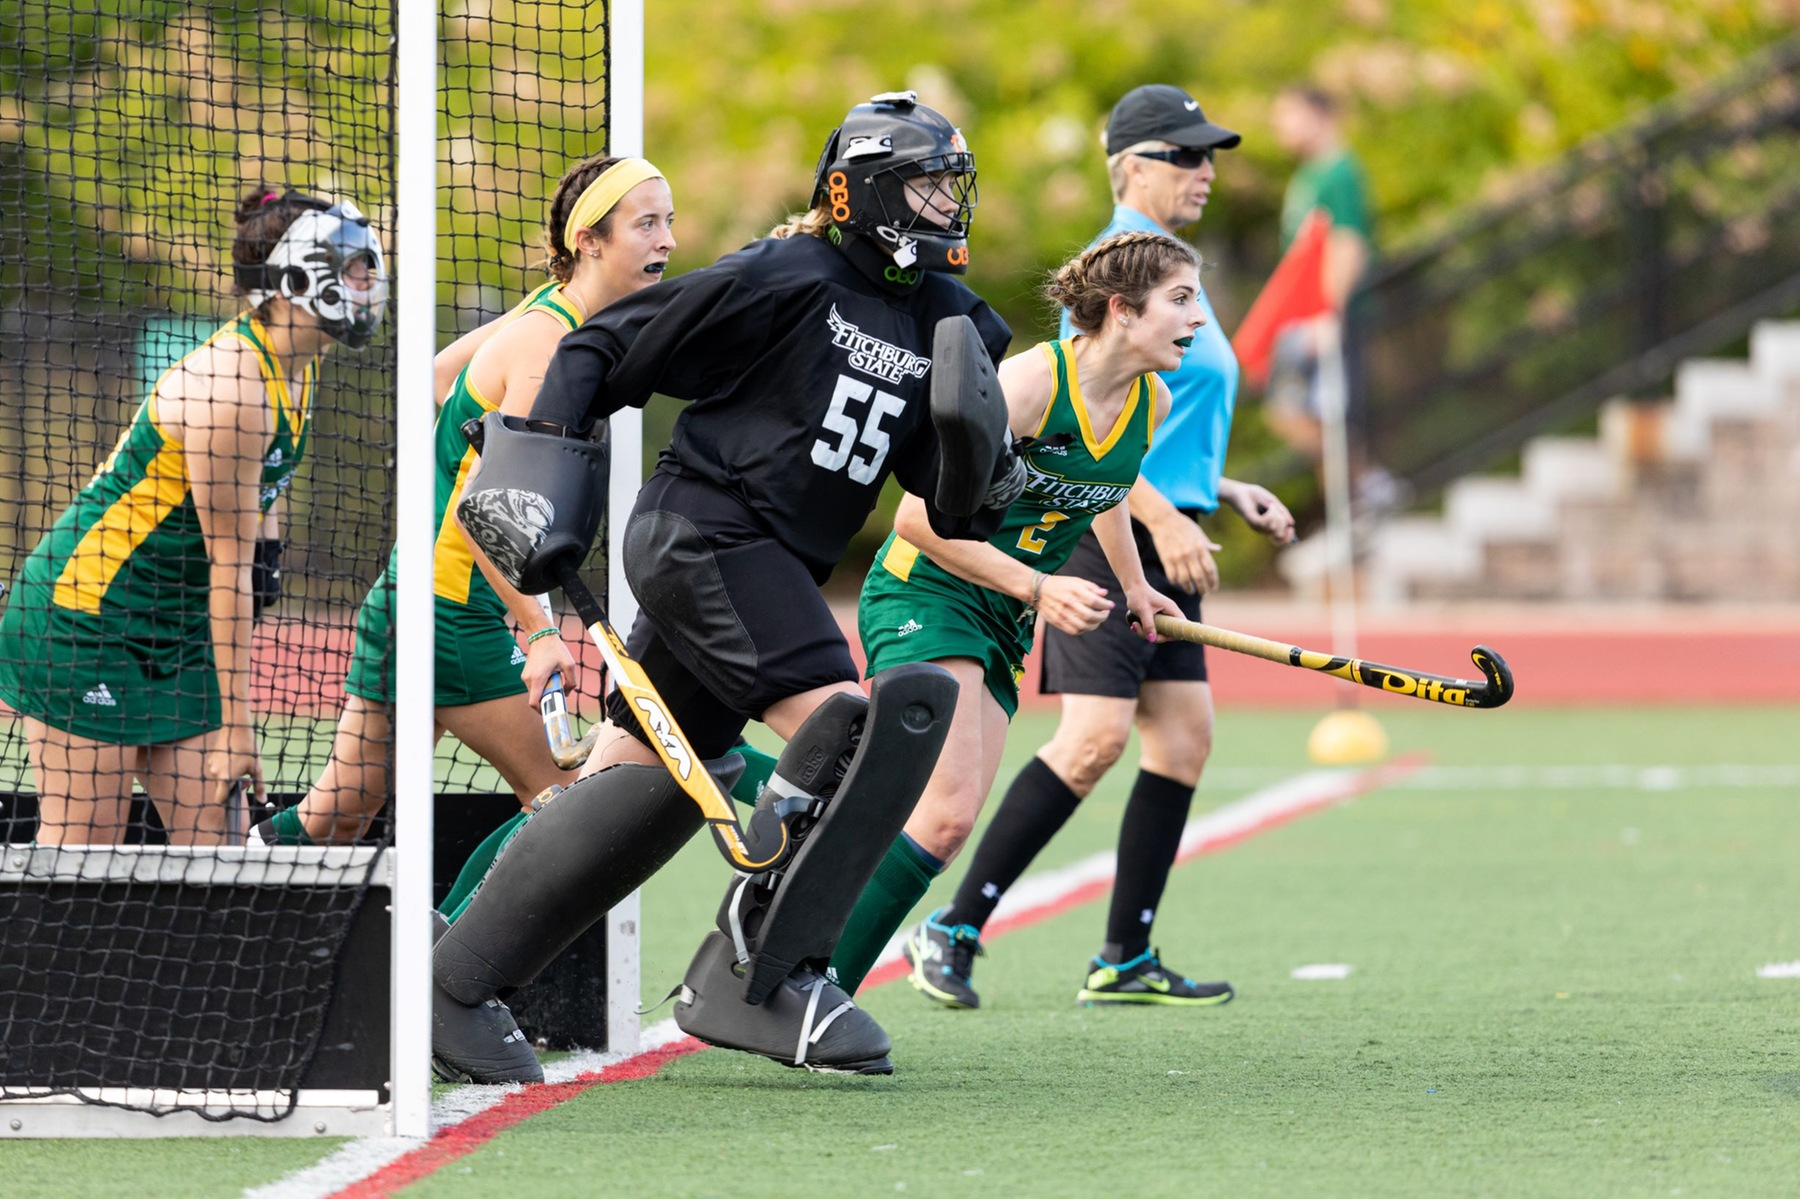 Falcons Soar over Owls with Shootout Victory